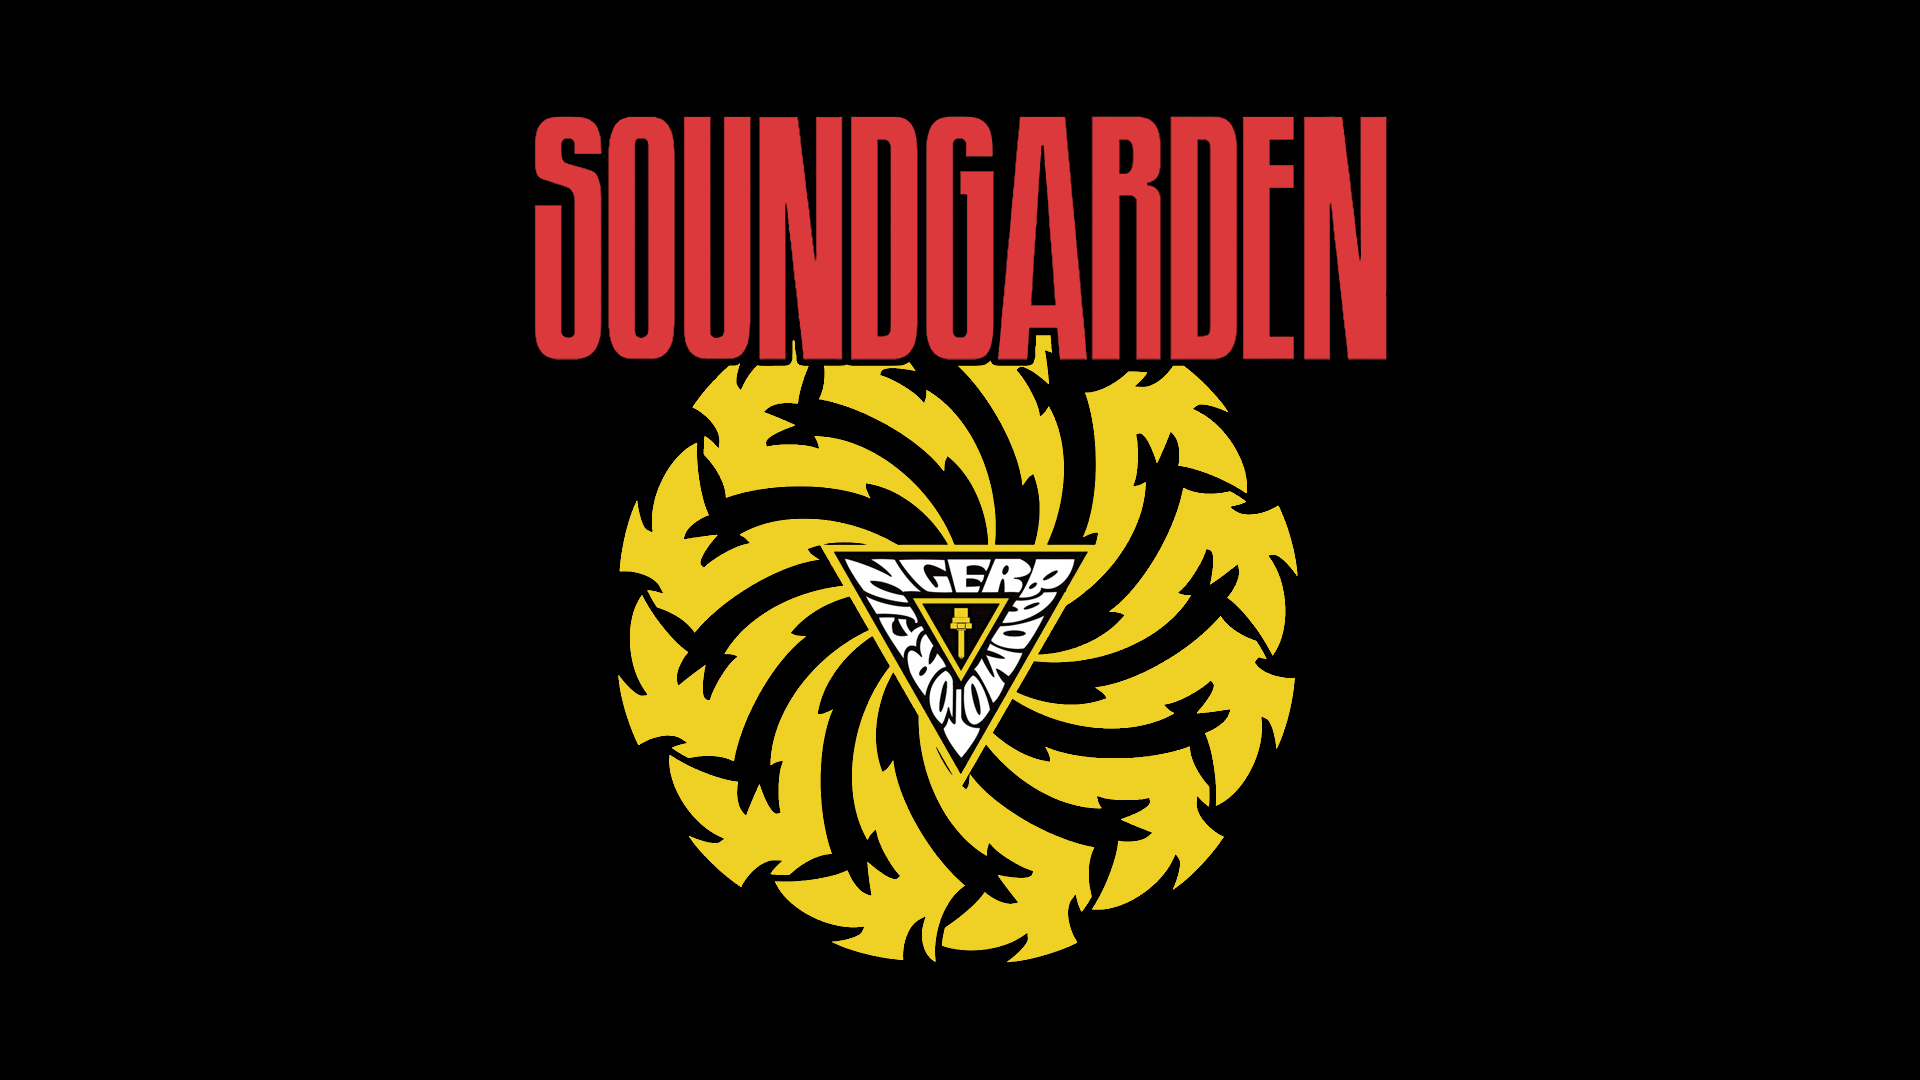 Soundgarden Wallpapers - Wallpaper Cave